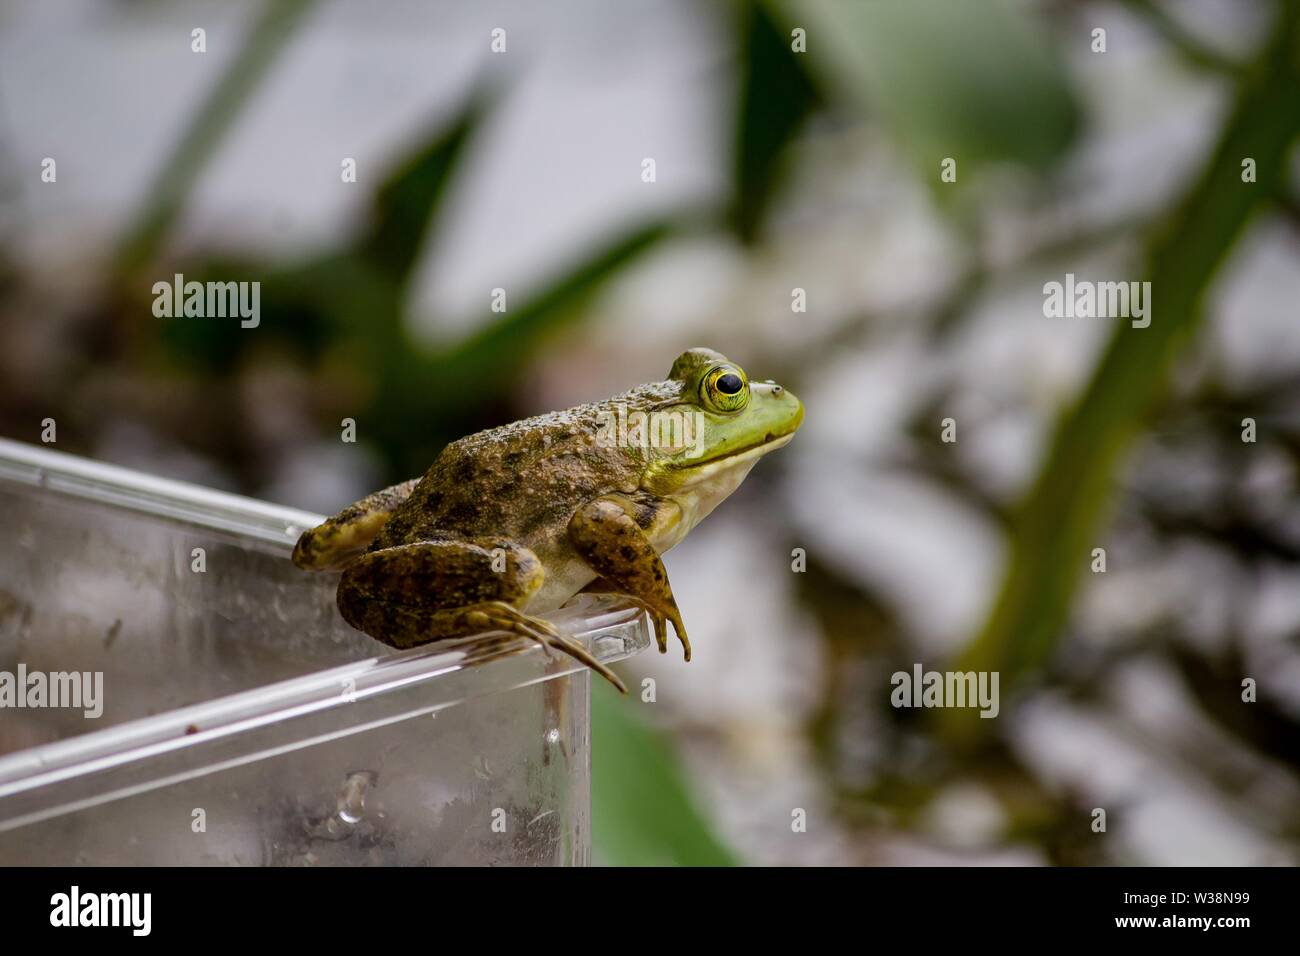 A closeup of a frog standing on a jar with natural blurred background - Stock Image